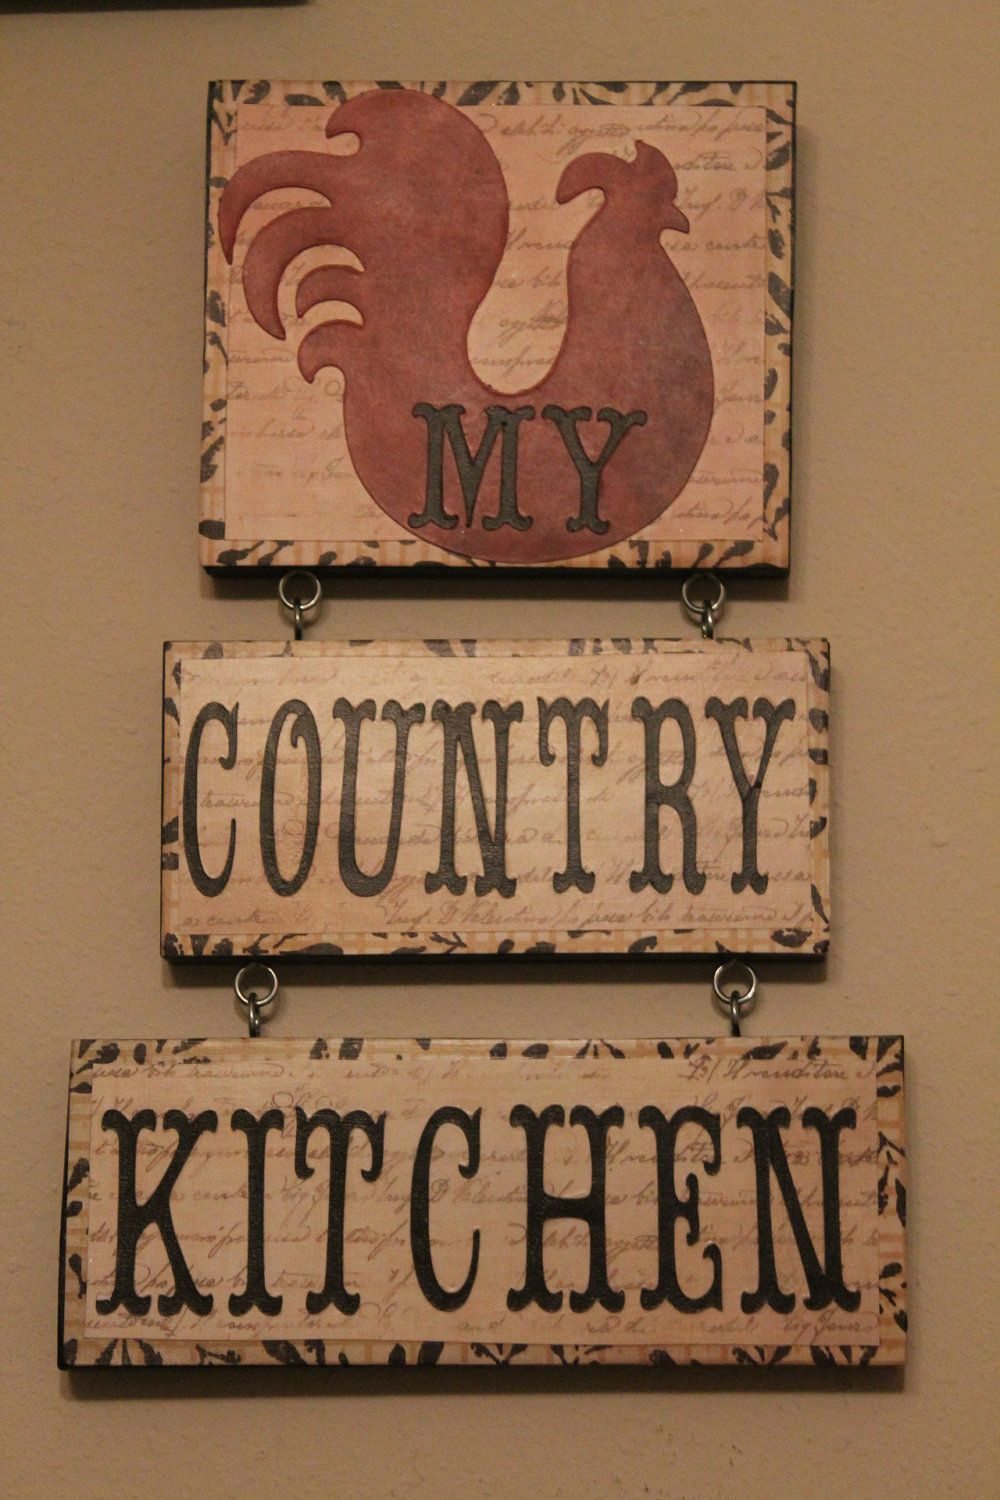 Kitchen Decor Signs Rooster Decorcountry Kitchen Sign.kitchen Decorhome Decor